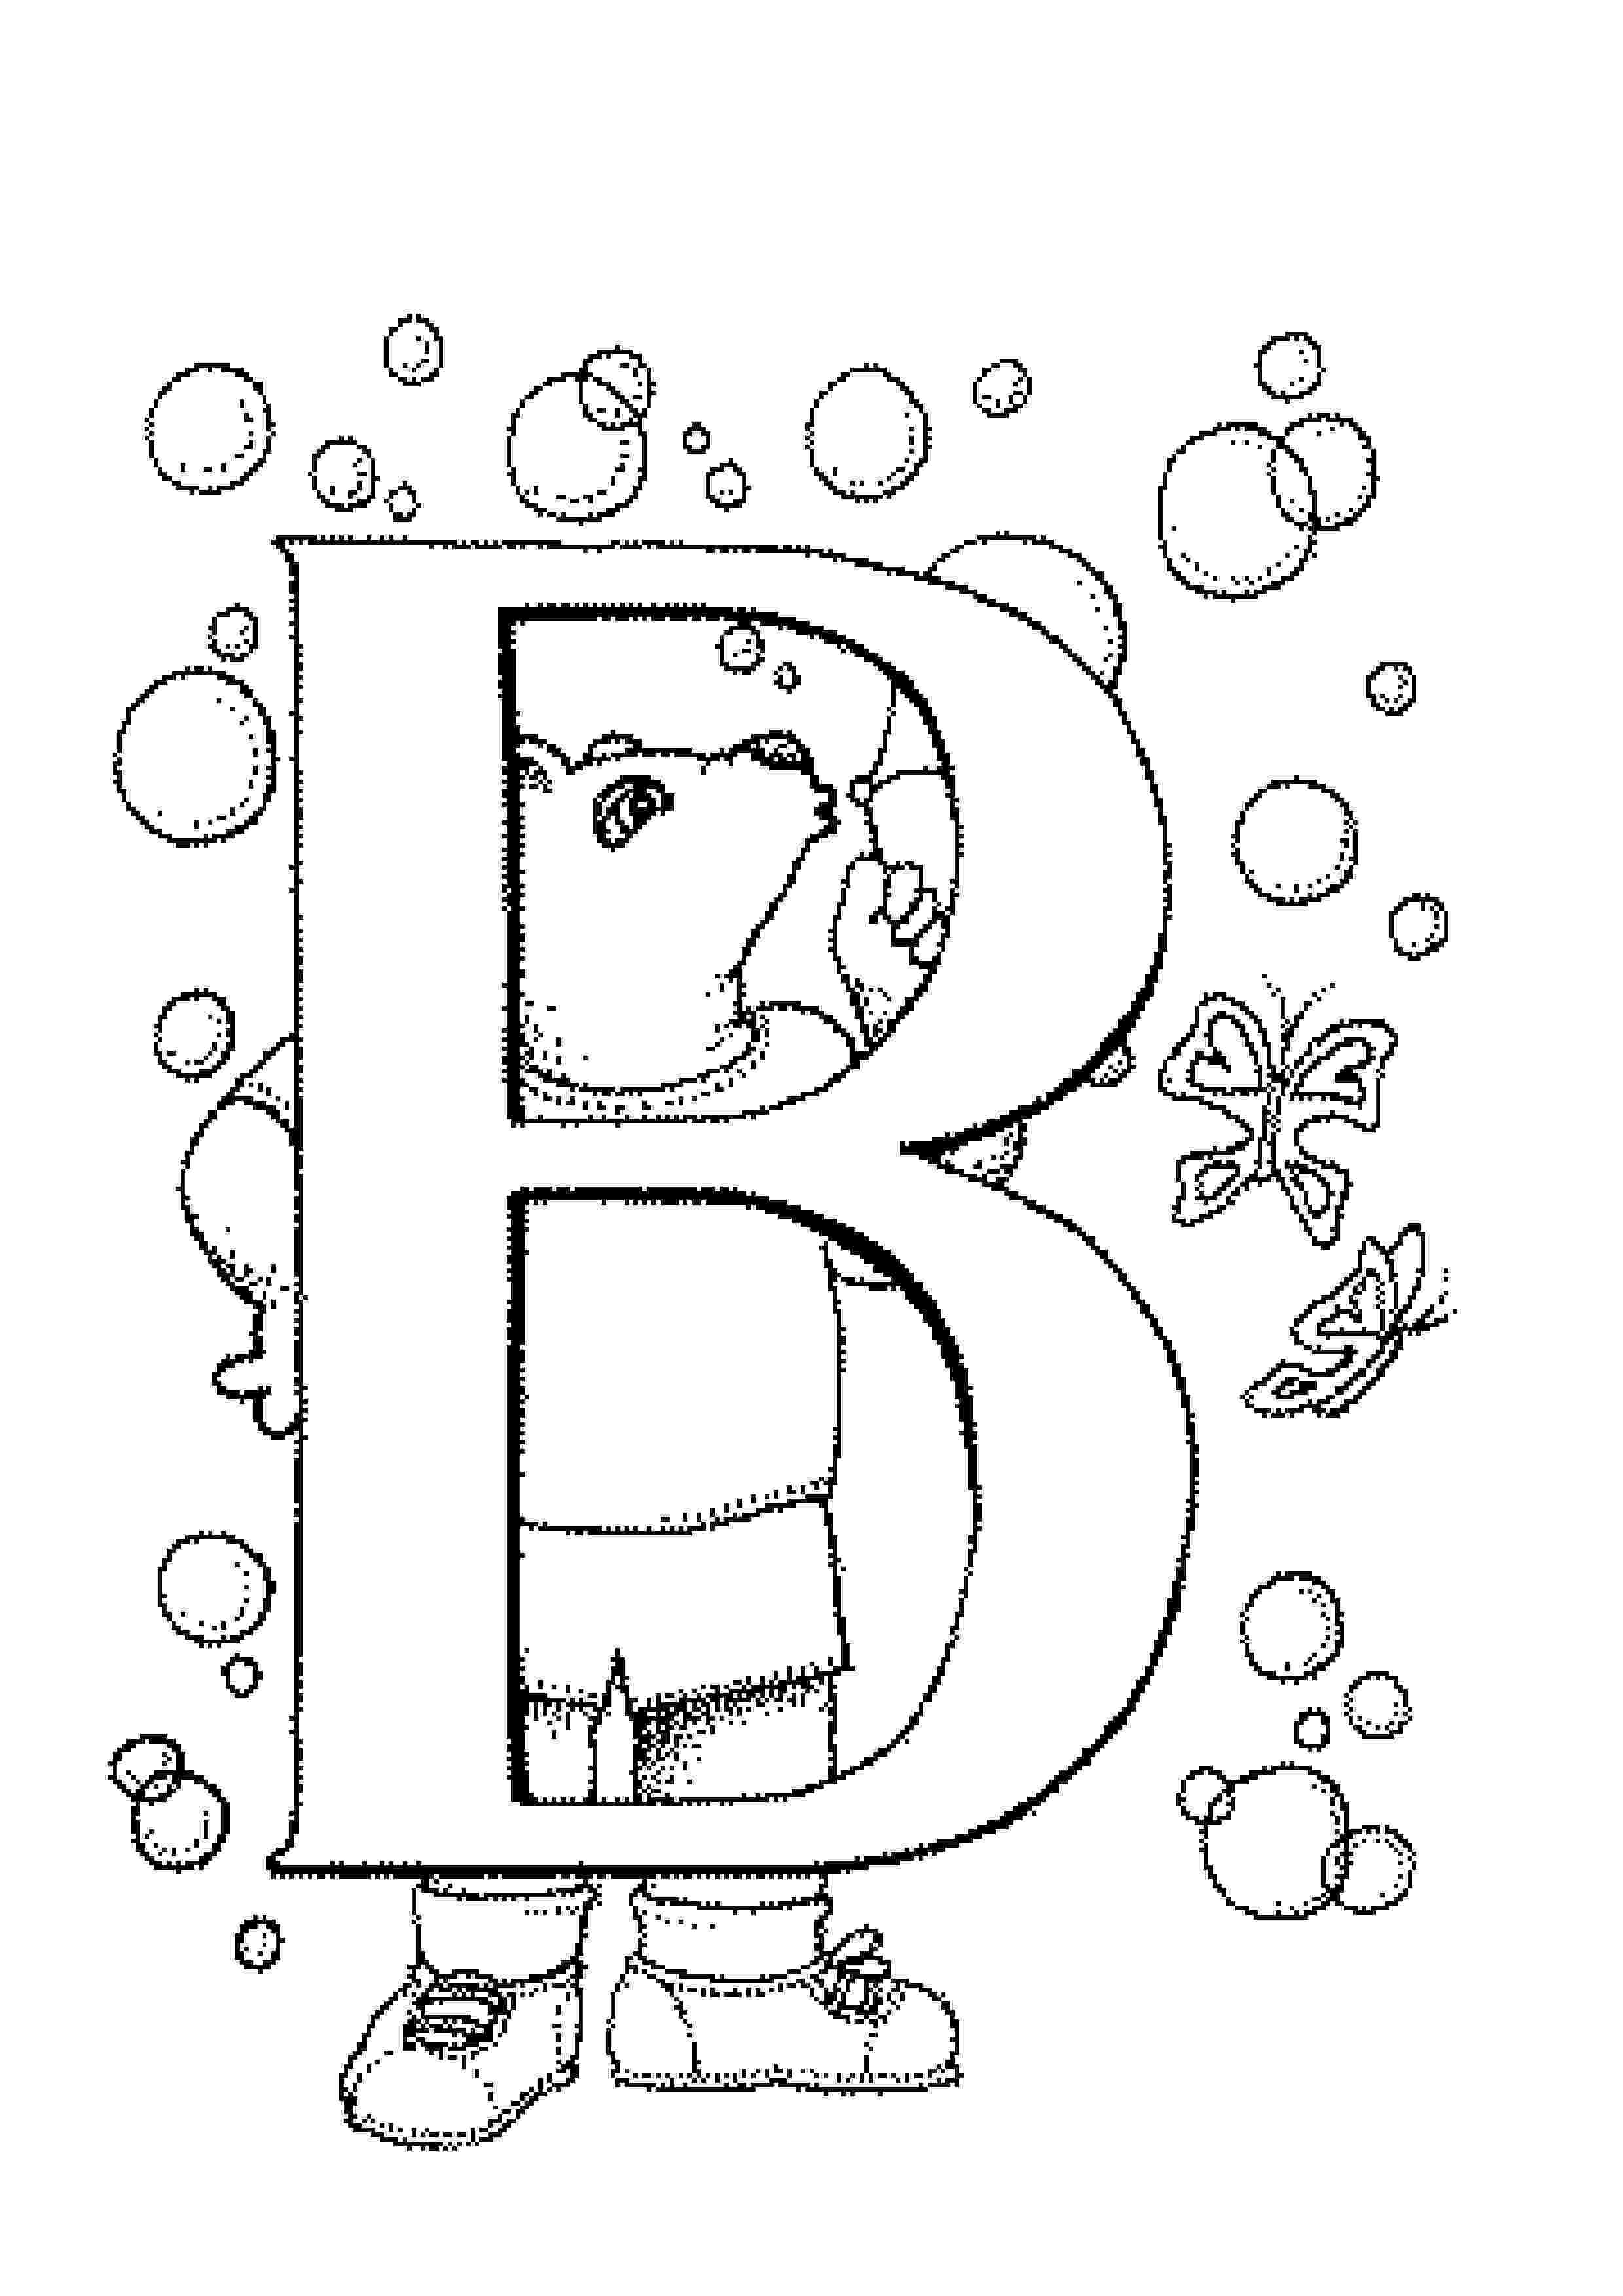 free alphabet coloring pages free printable alphabet coloring pages for kids free alphabet pages coloring